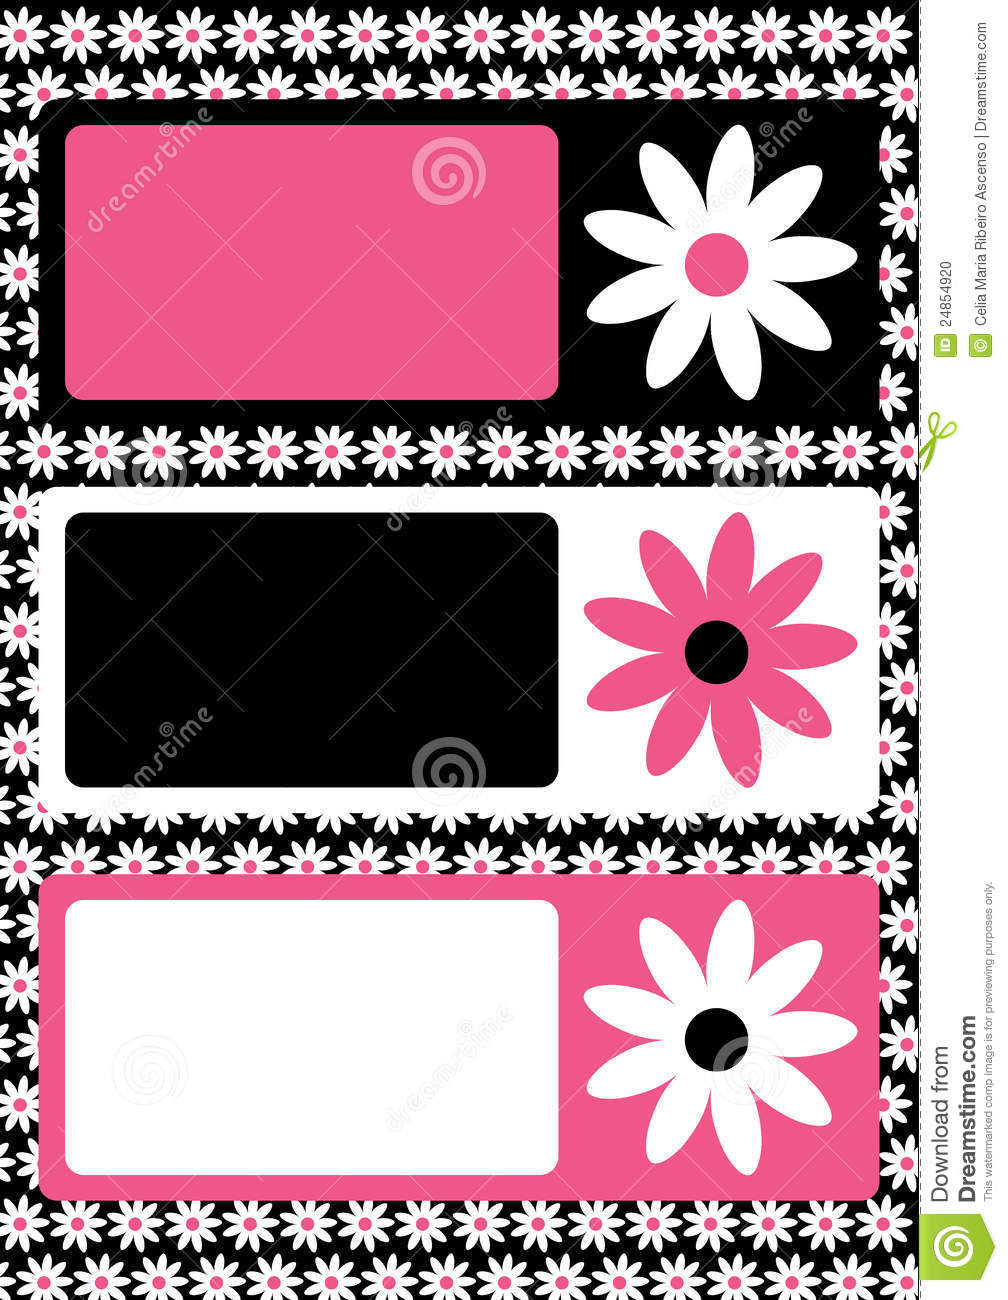 Flower tags frame or greeting card